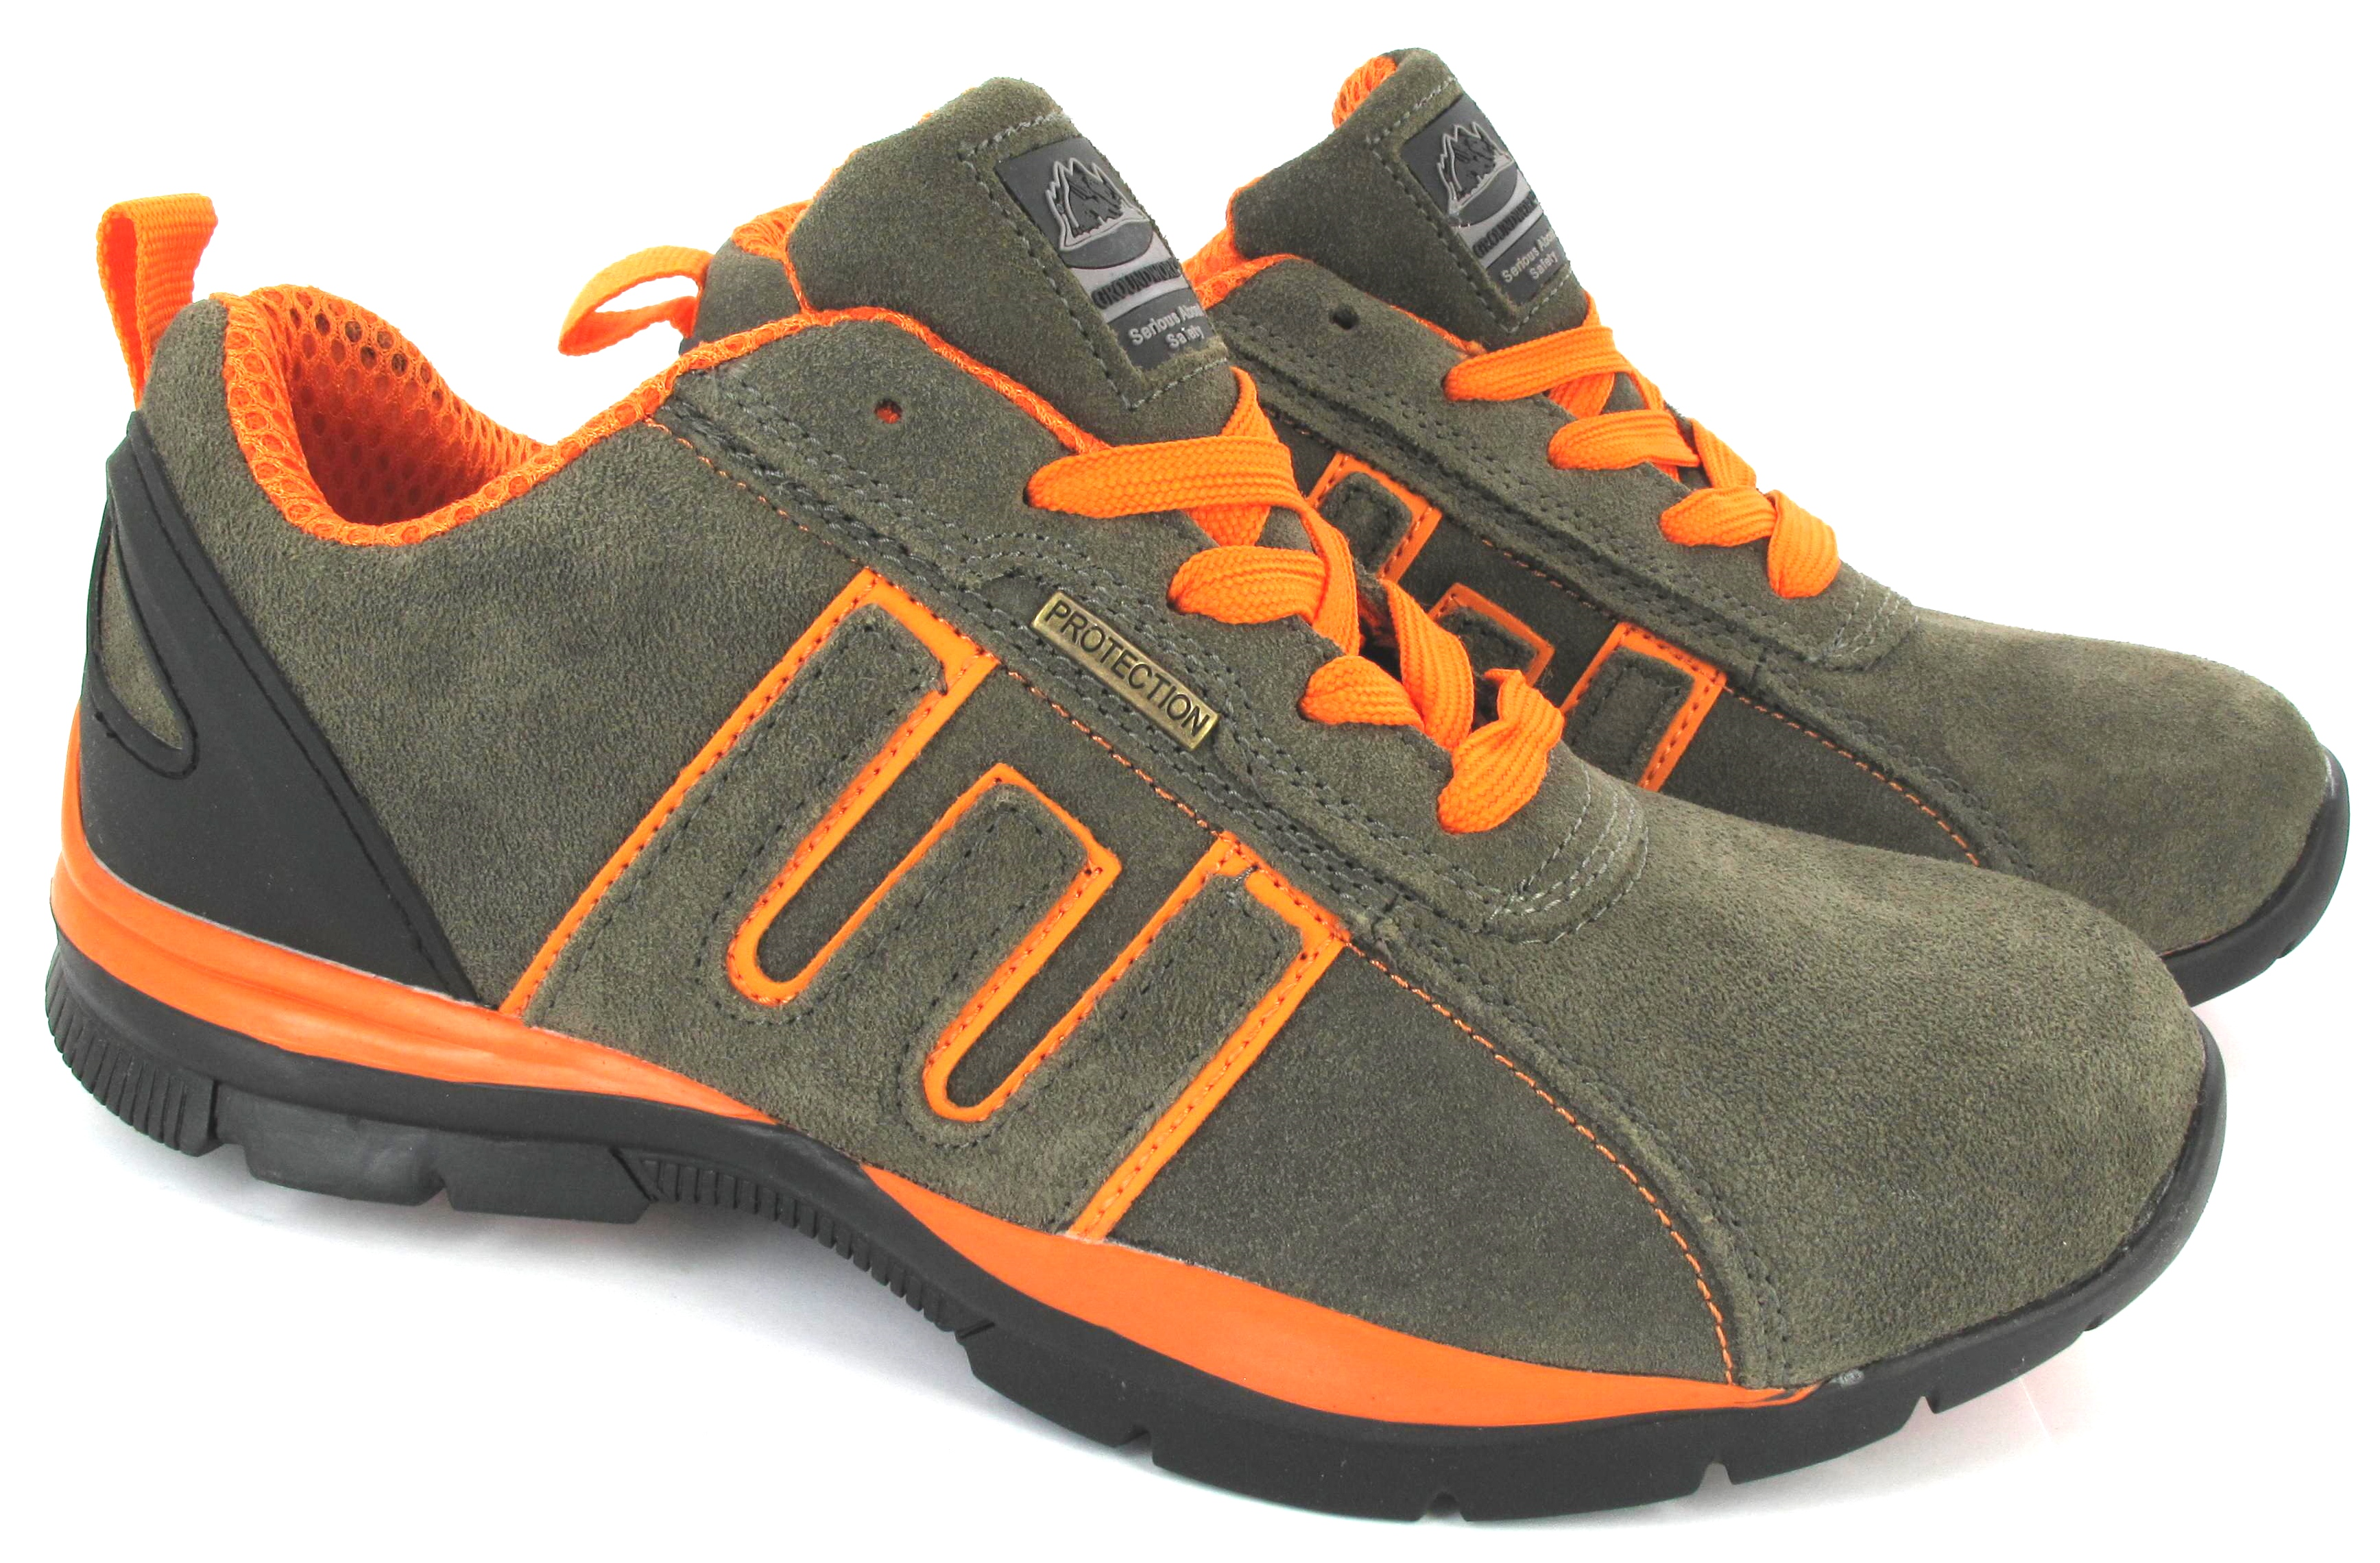 MENS-WORK-SAFETY-STEEL-TOE-CAP-LIGHTWEIGHT-NEW-STYLES-BOOT-TRAINERS-SHOES-3-13